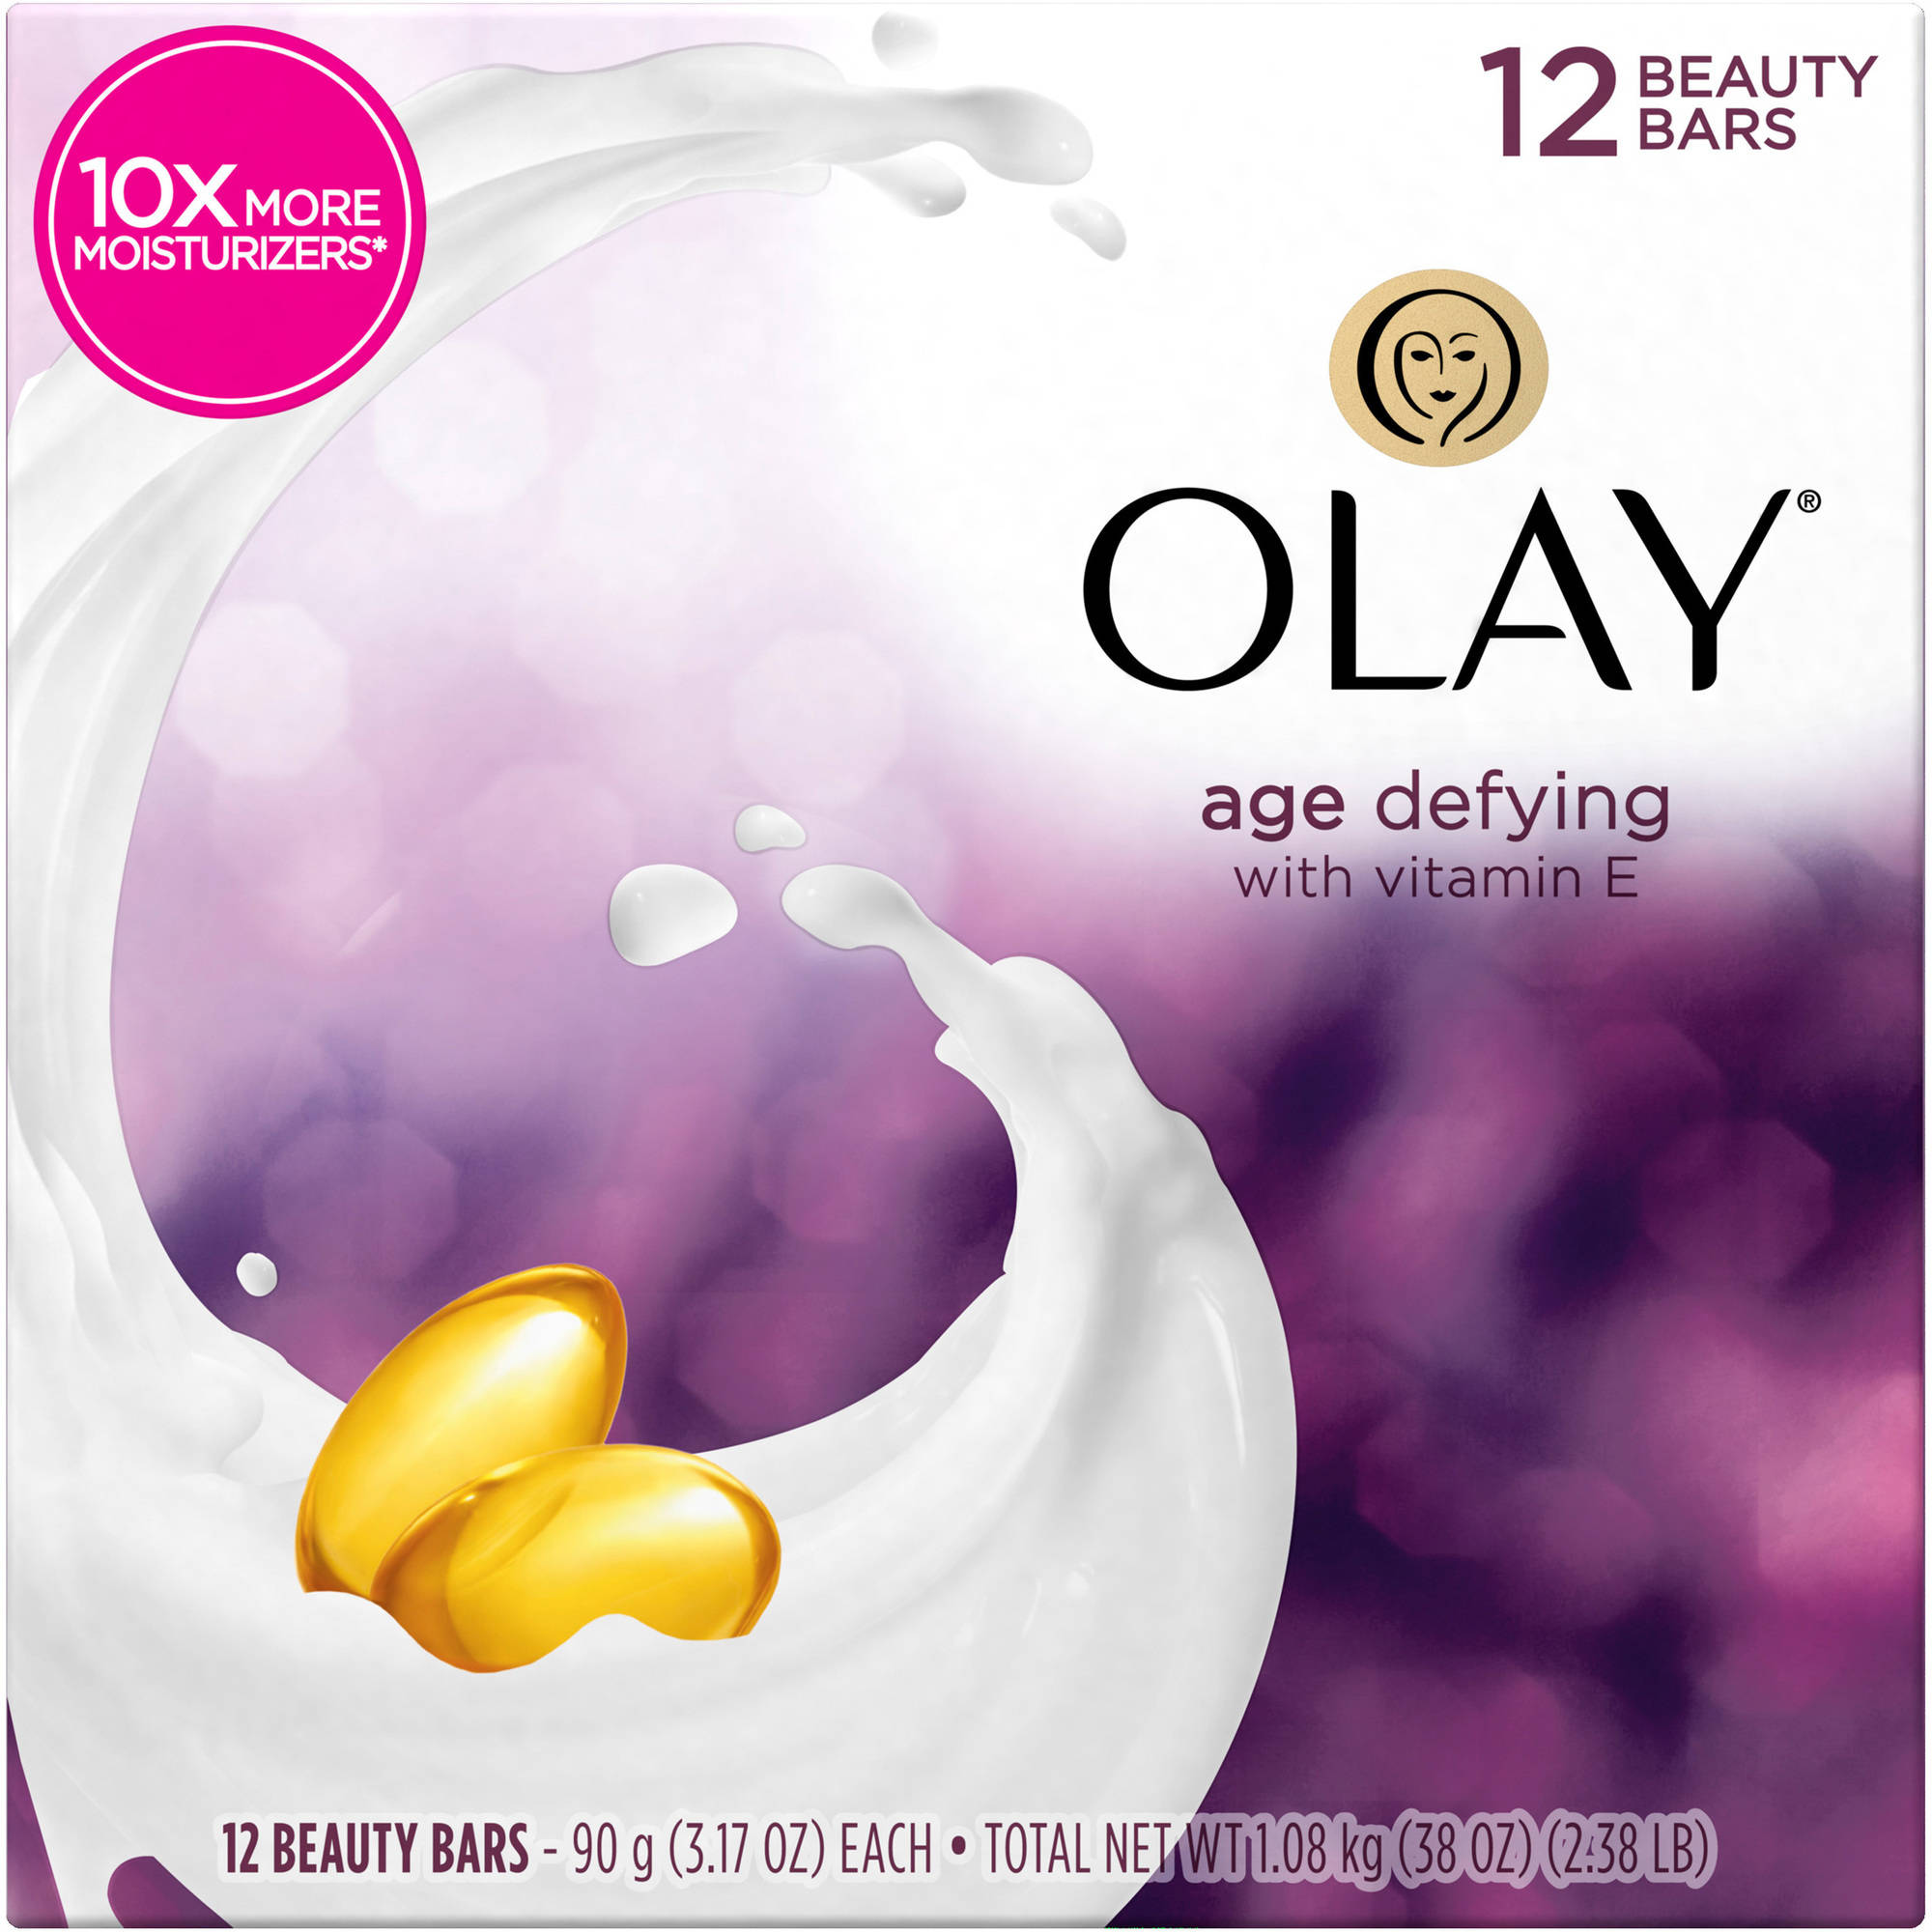 Olay Age Defying Beauty Bars, 3.17 oz, 6 count, (Pack of 2)